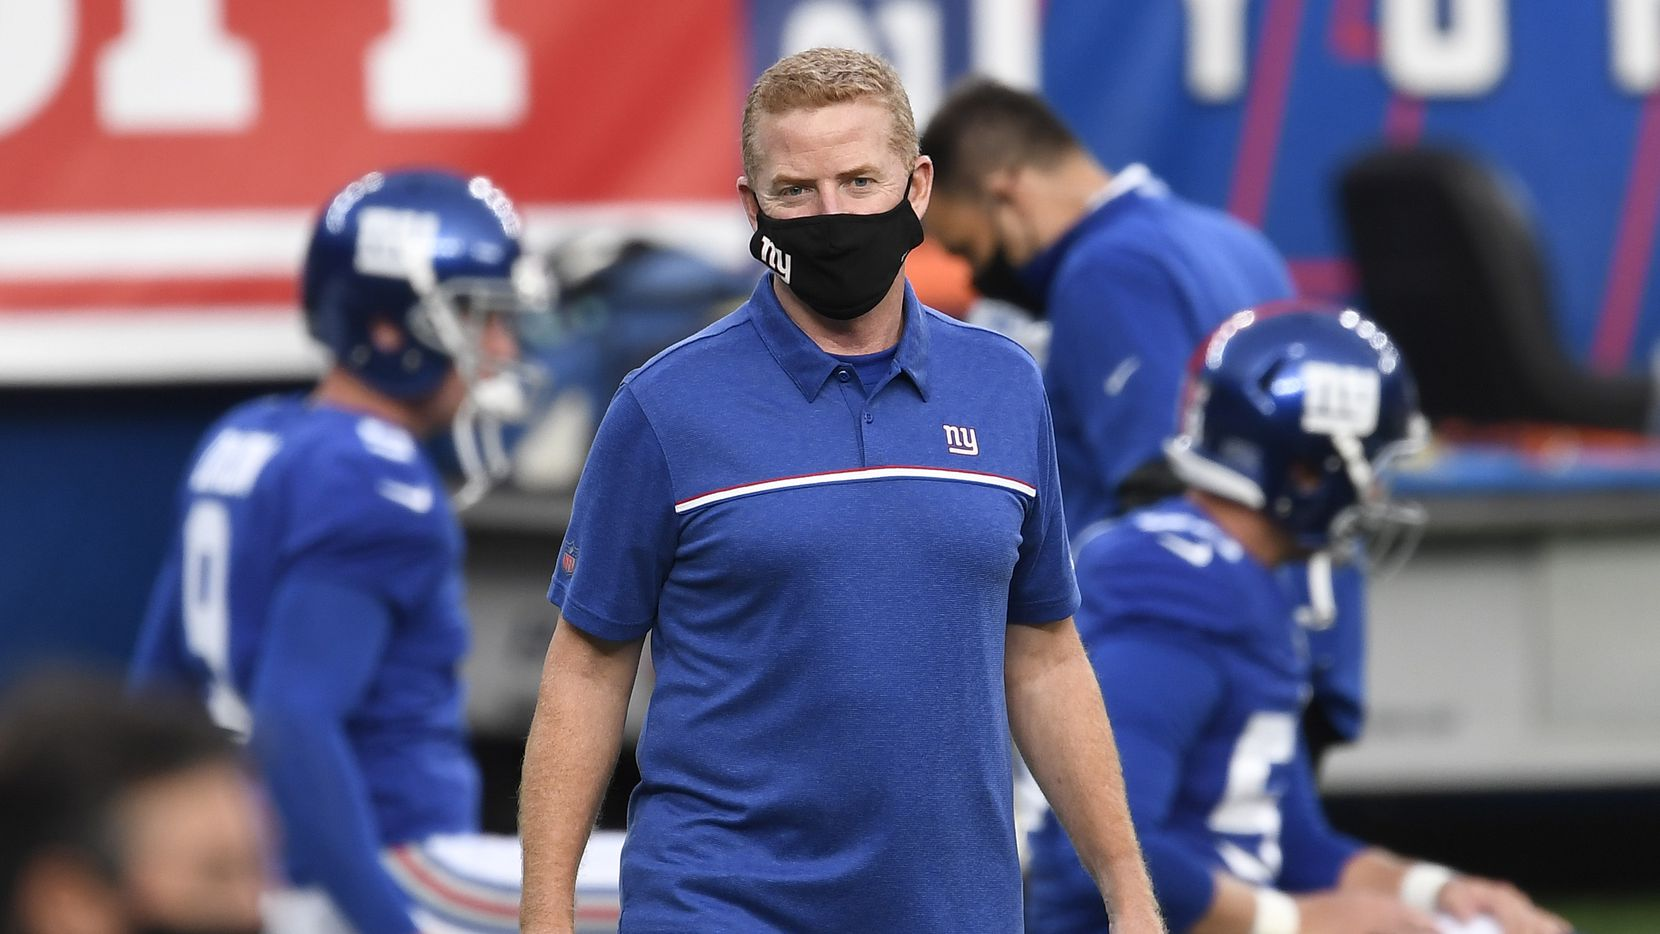 EAST RUTHERFORD, NEW JERSEY - SEPTEMBER 14: Offensive coordinator Jason Garrett of the New York Giants looks on during warmups before the game against the Pittsburgh Steelers at MetLife Stadium on September 14, 2020 in East Rutherford, New Jersey.